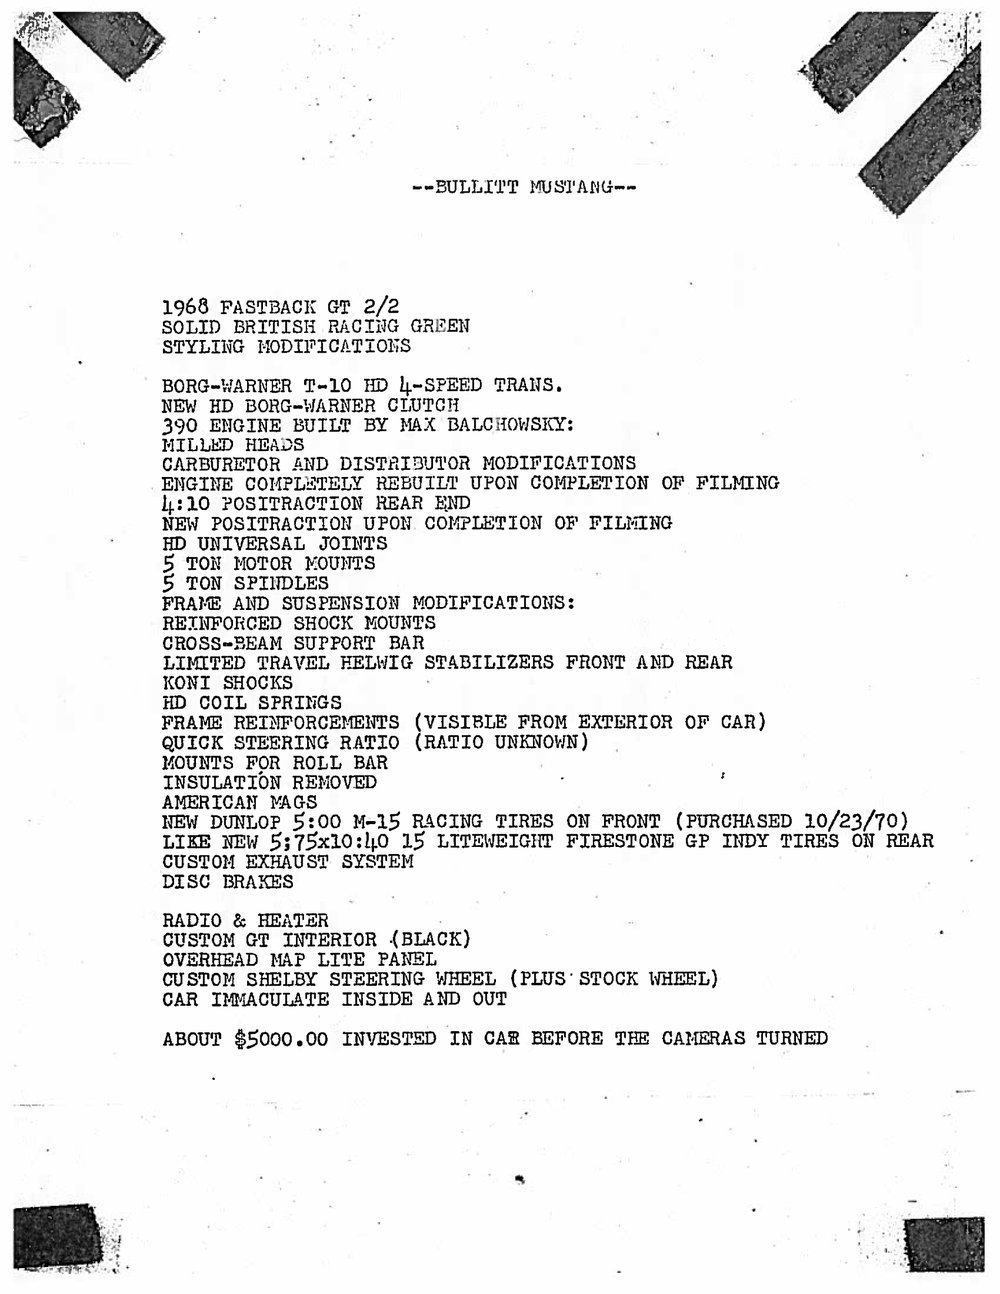 This is the list of features Robert Ross wrote to describe Bullitt #559 when he offered it for sale. Property of Frank Marranca